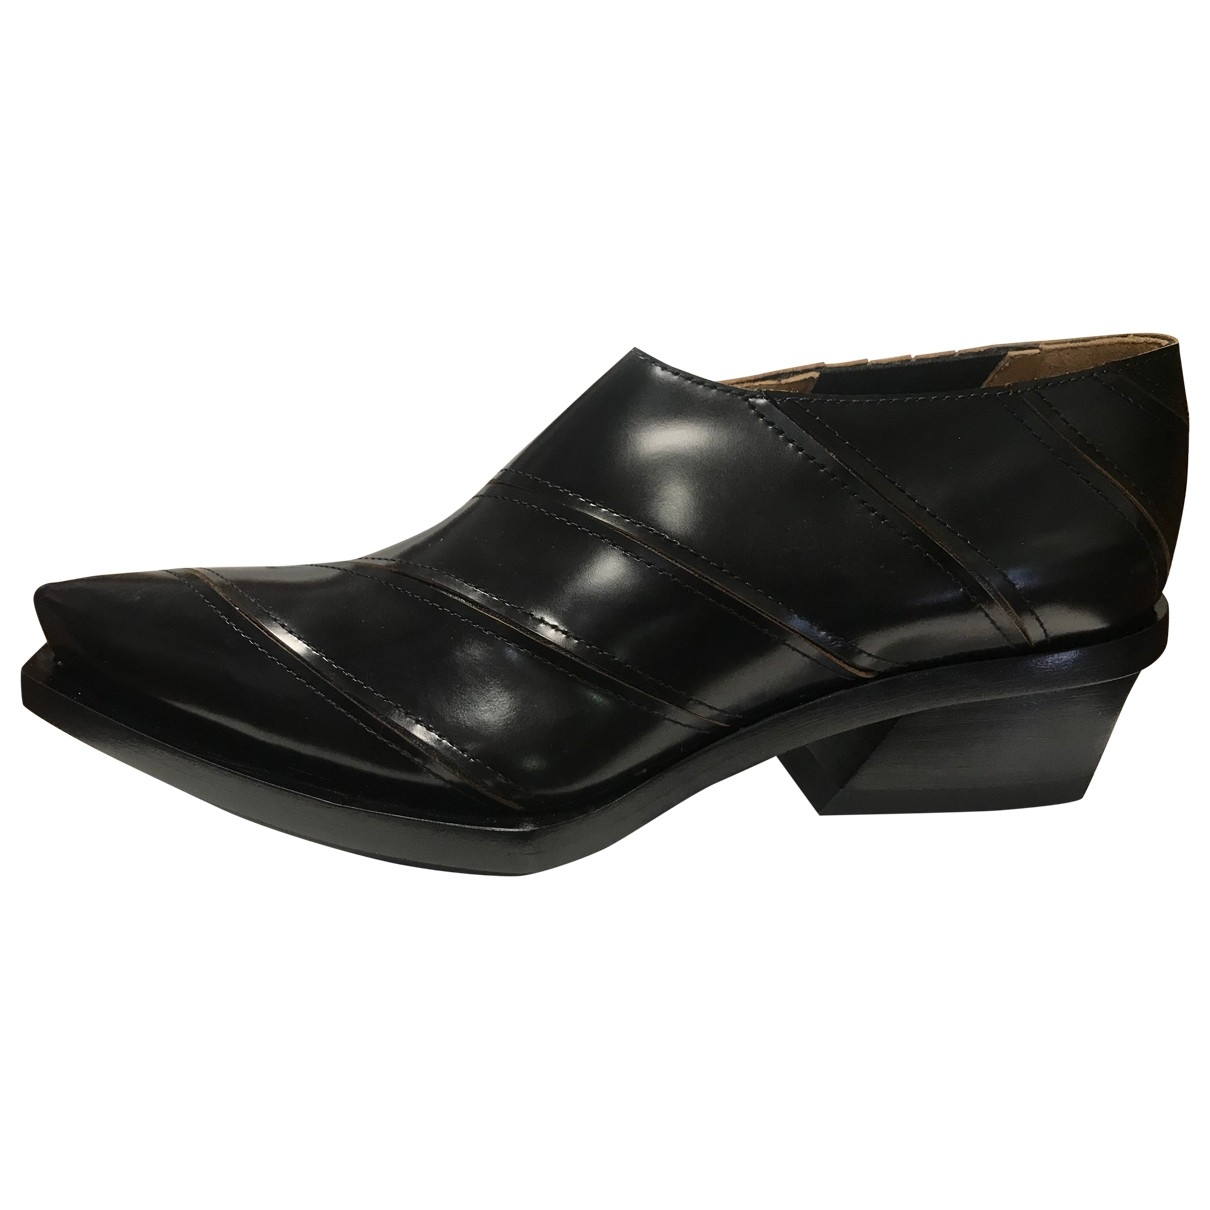 Proenza Schouler \N Black Leather Ankle boots for Women 38 IT